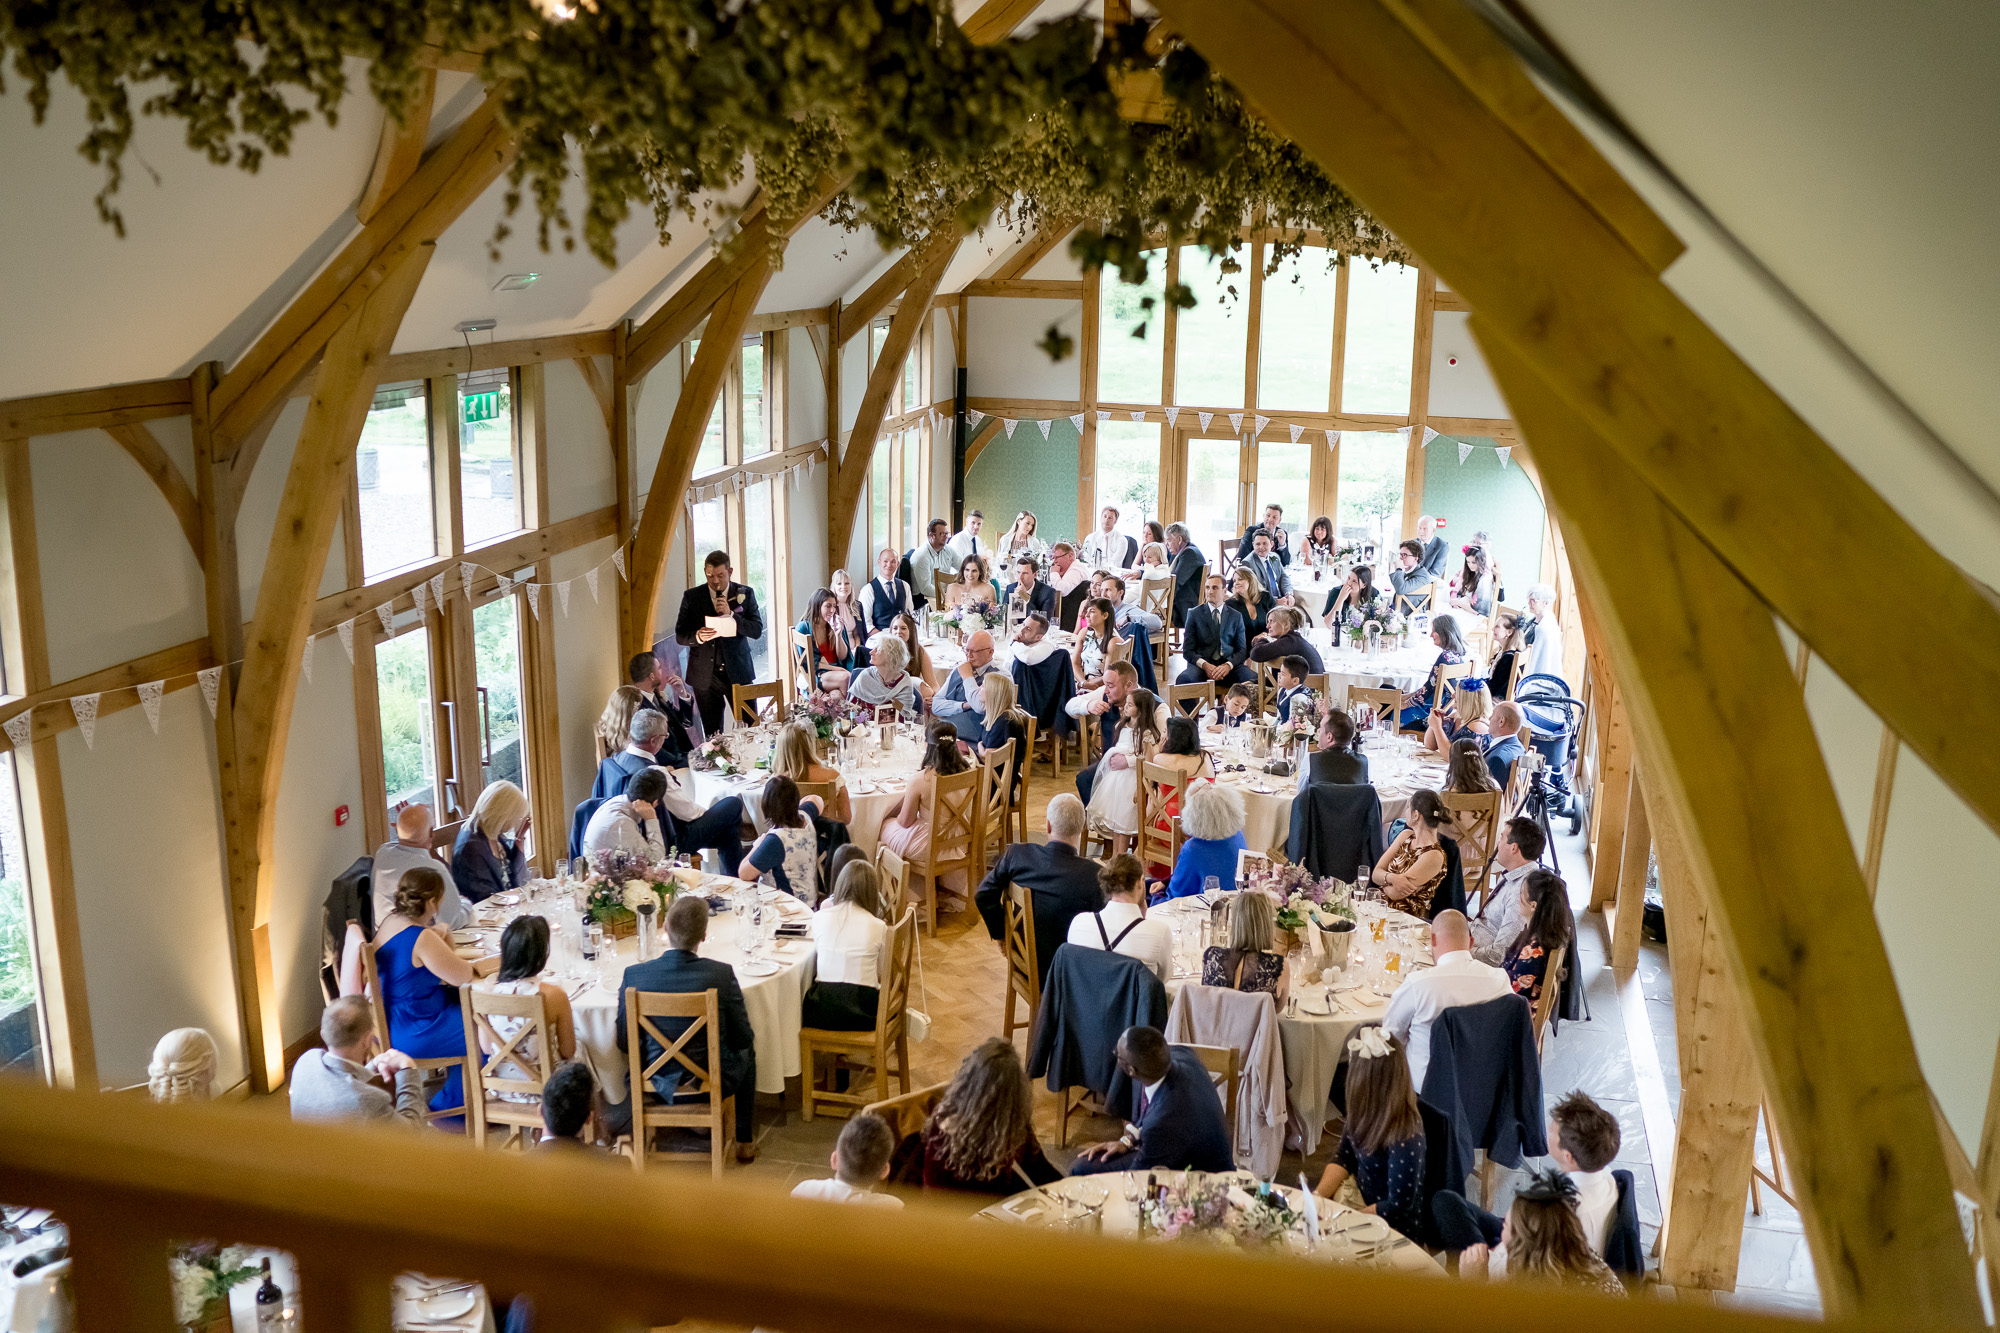 Tower Hill BArn Wedding Photographer based in north west england (35 of 35).jpg